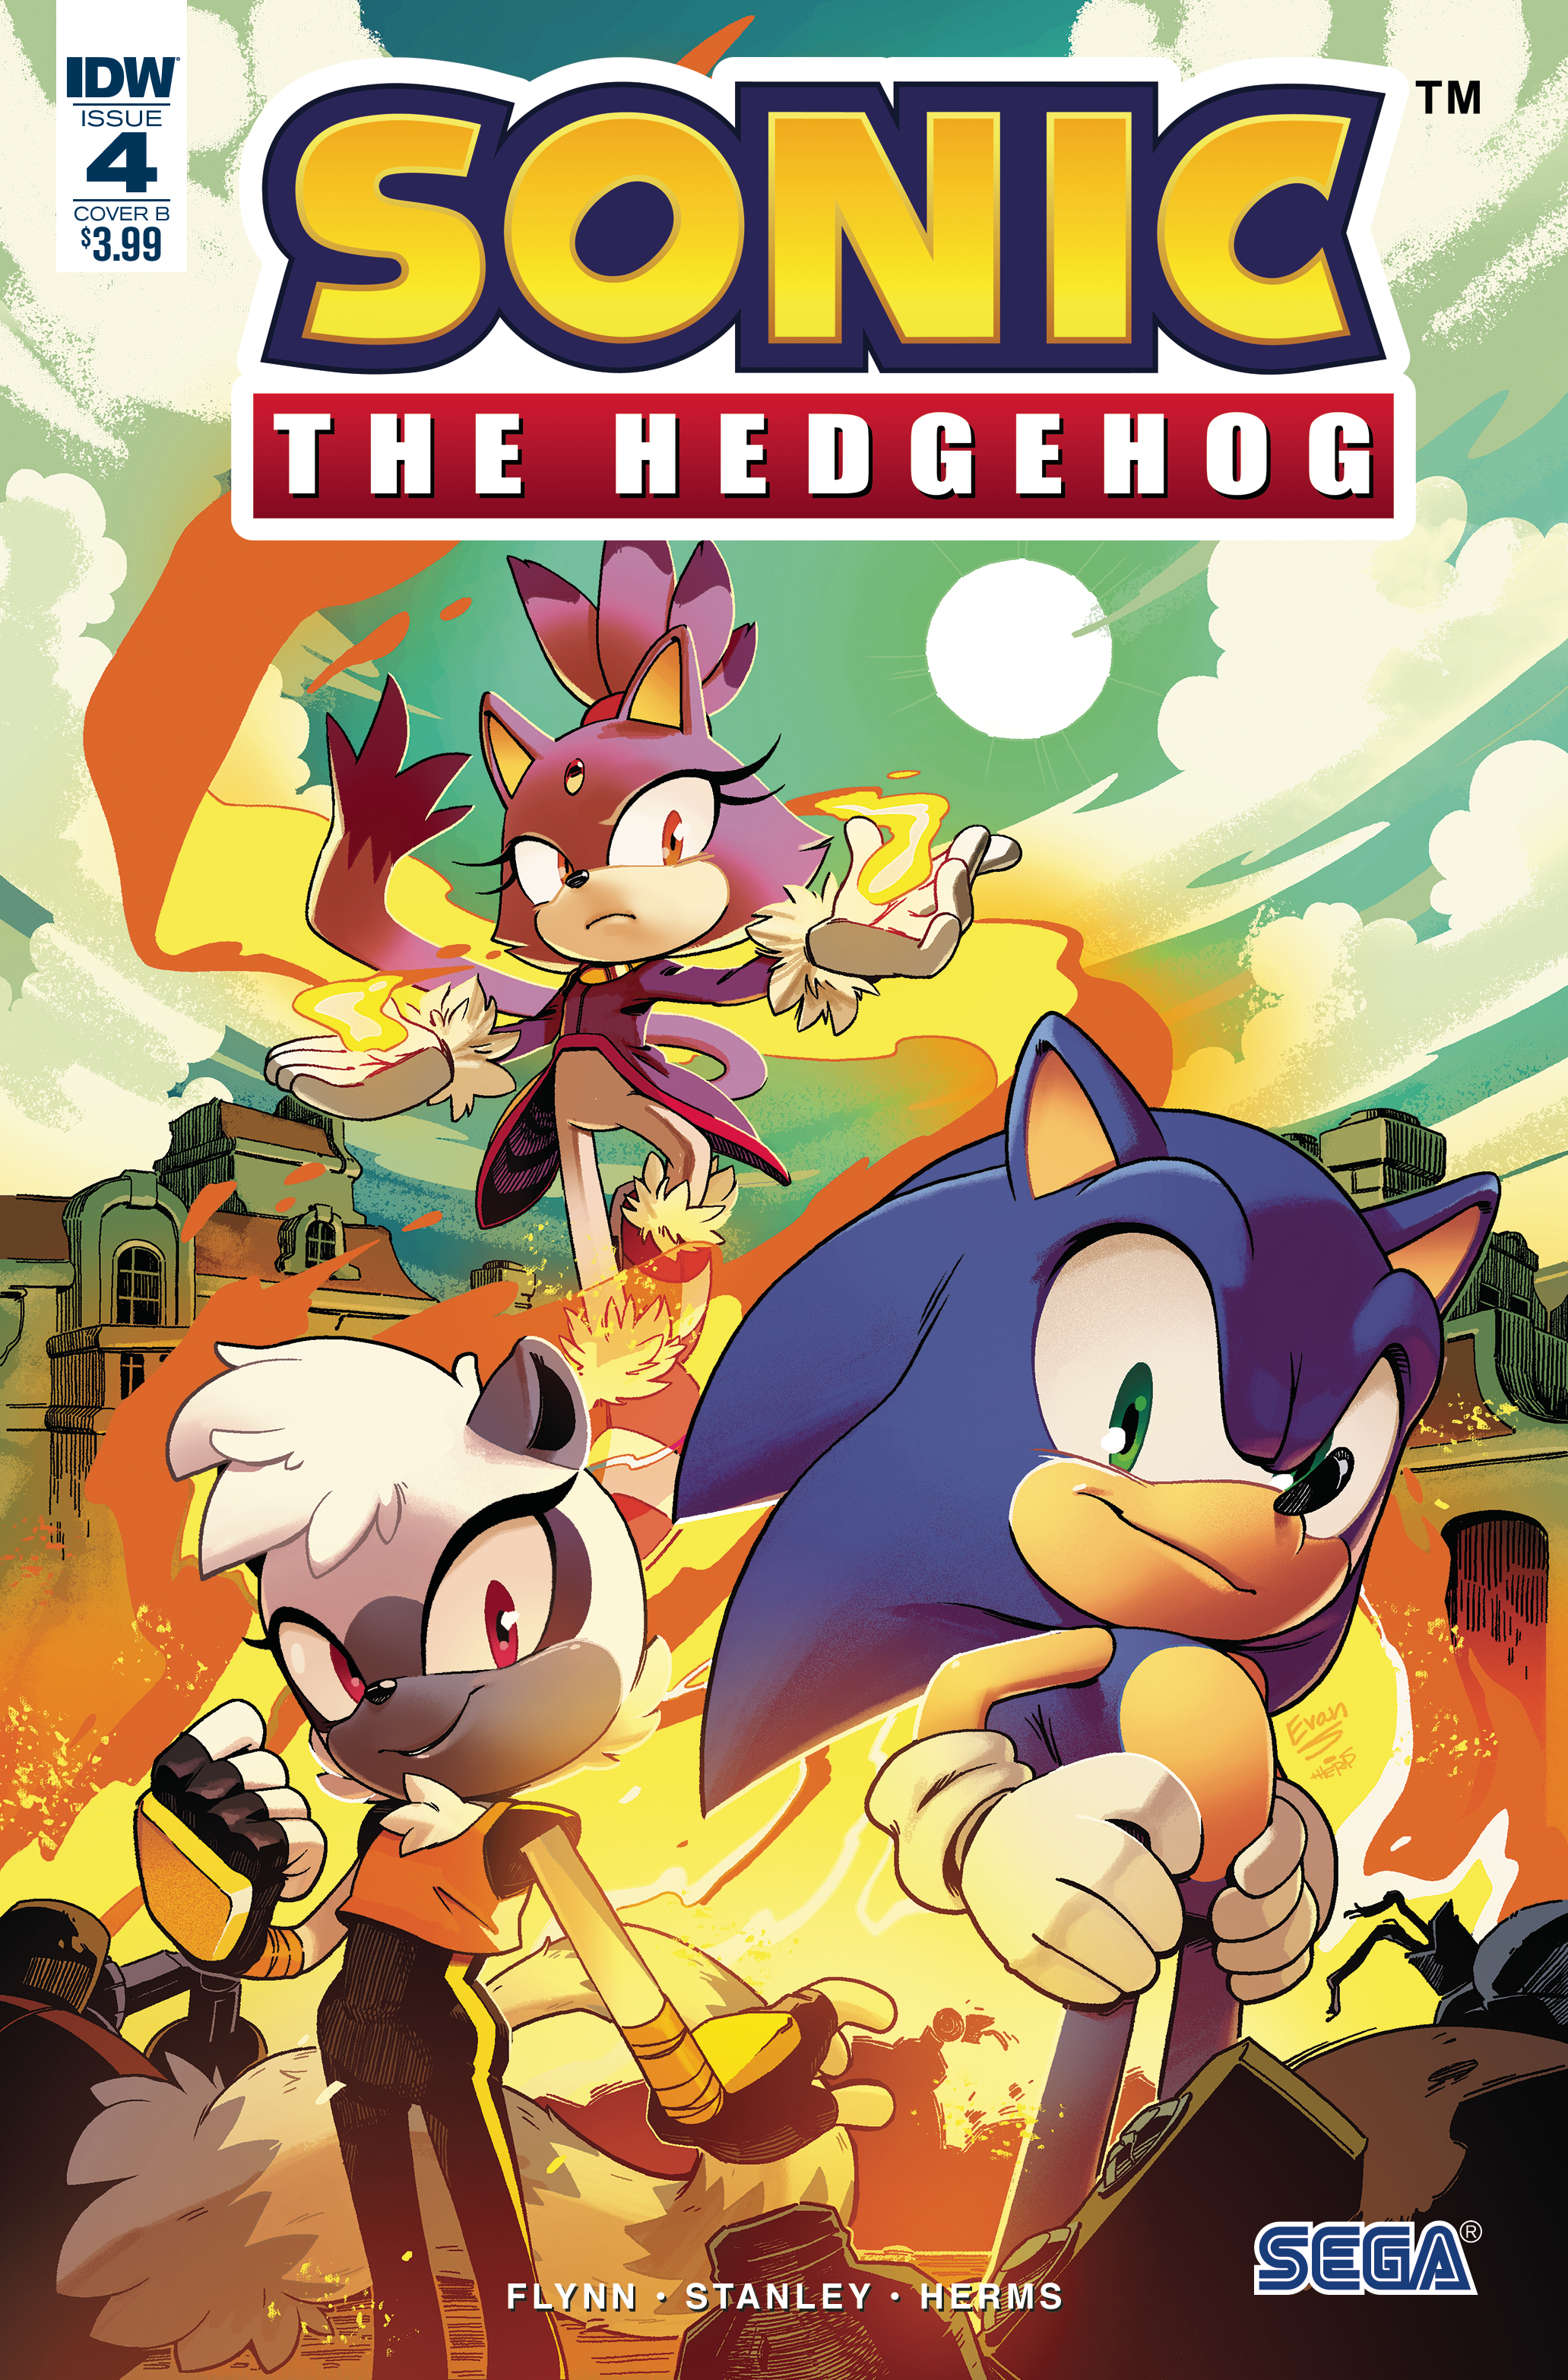 SONIC THE HEDGEHOG #4 CVR B STANLEY